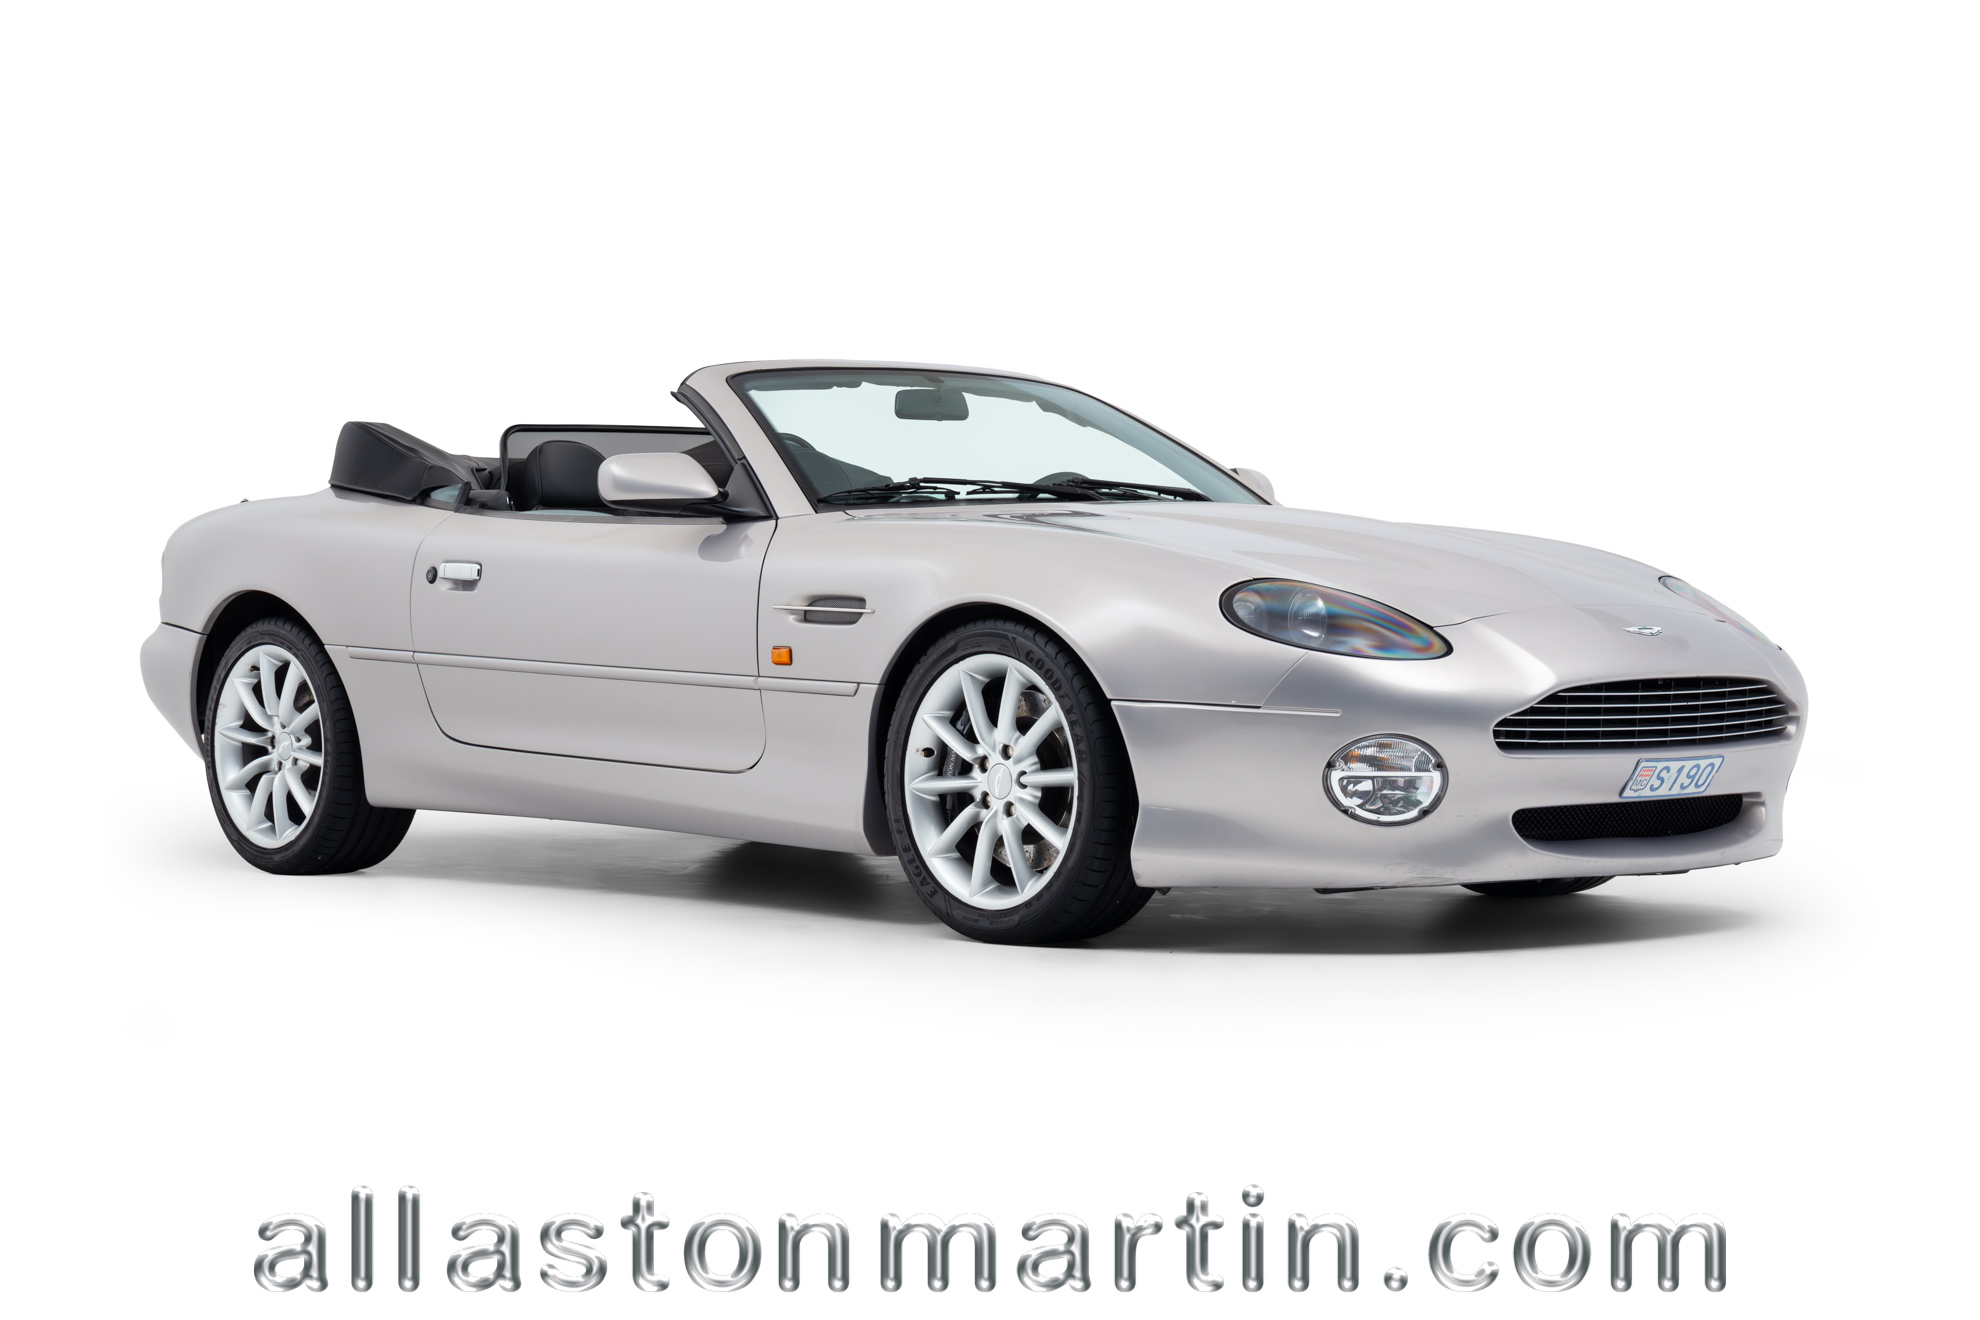 aston martin cars for sale - buy aston martin - details - all aston